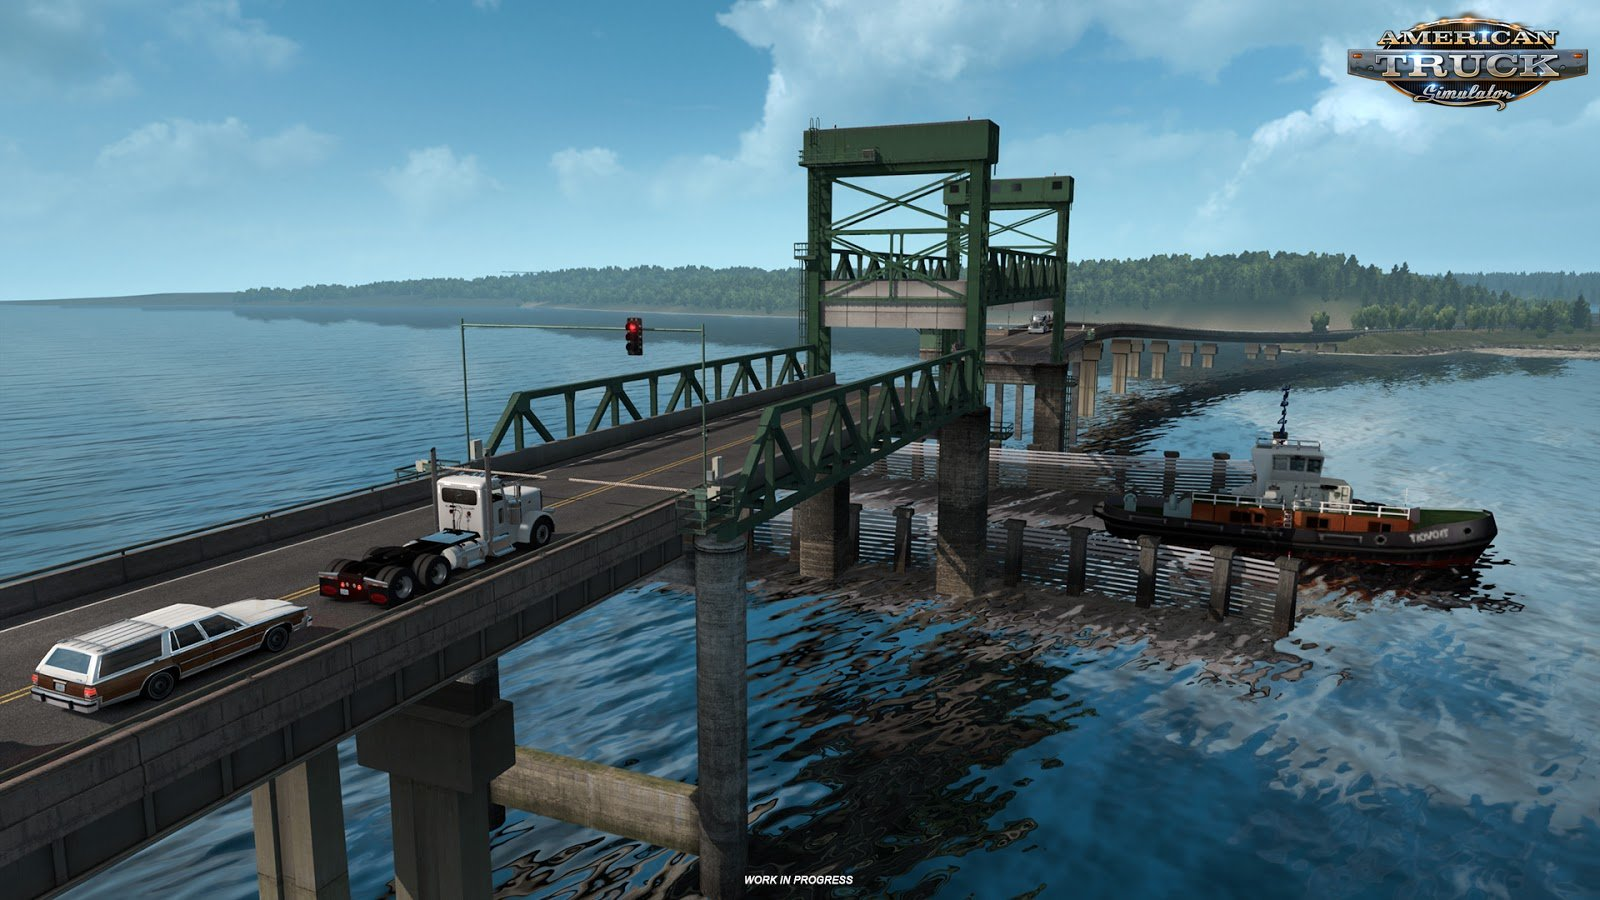 Bridges of Oregon in American Truck Simulator